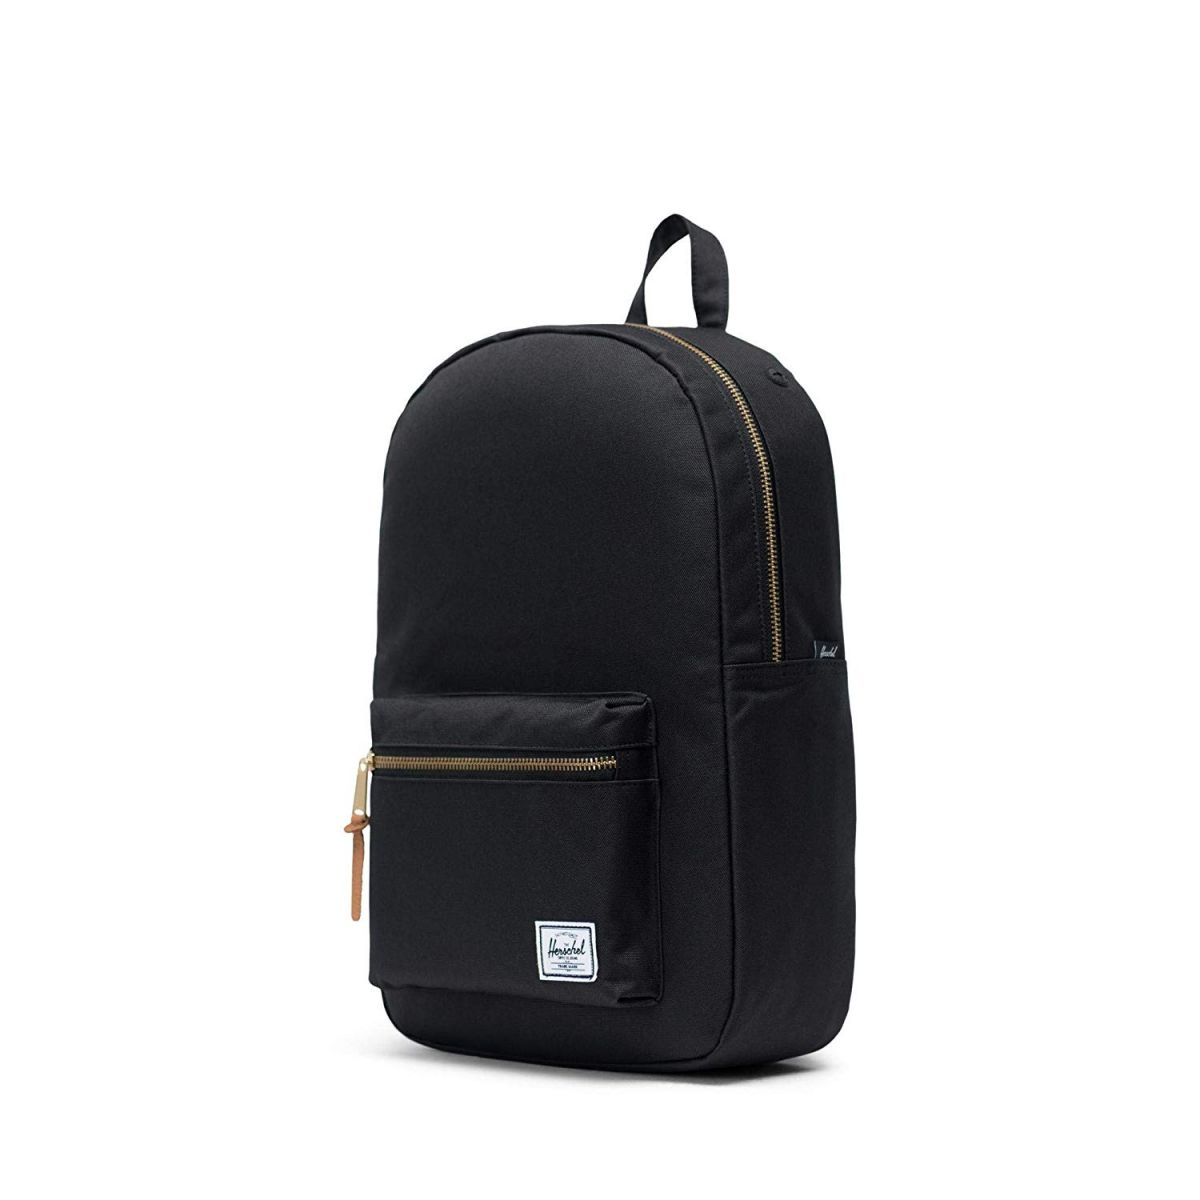 A classic Herschel backpack in black